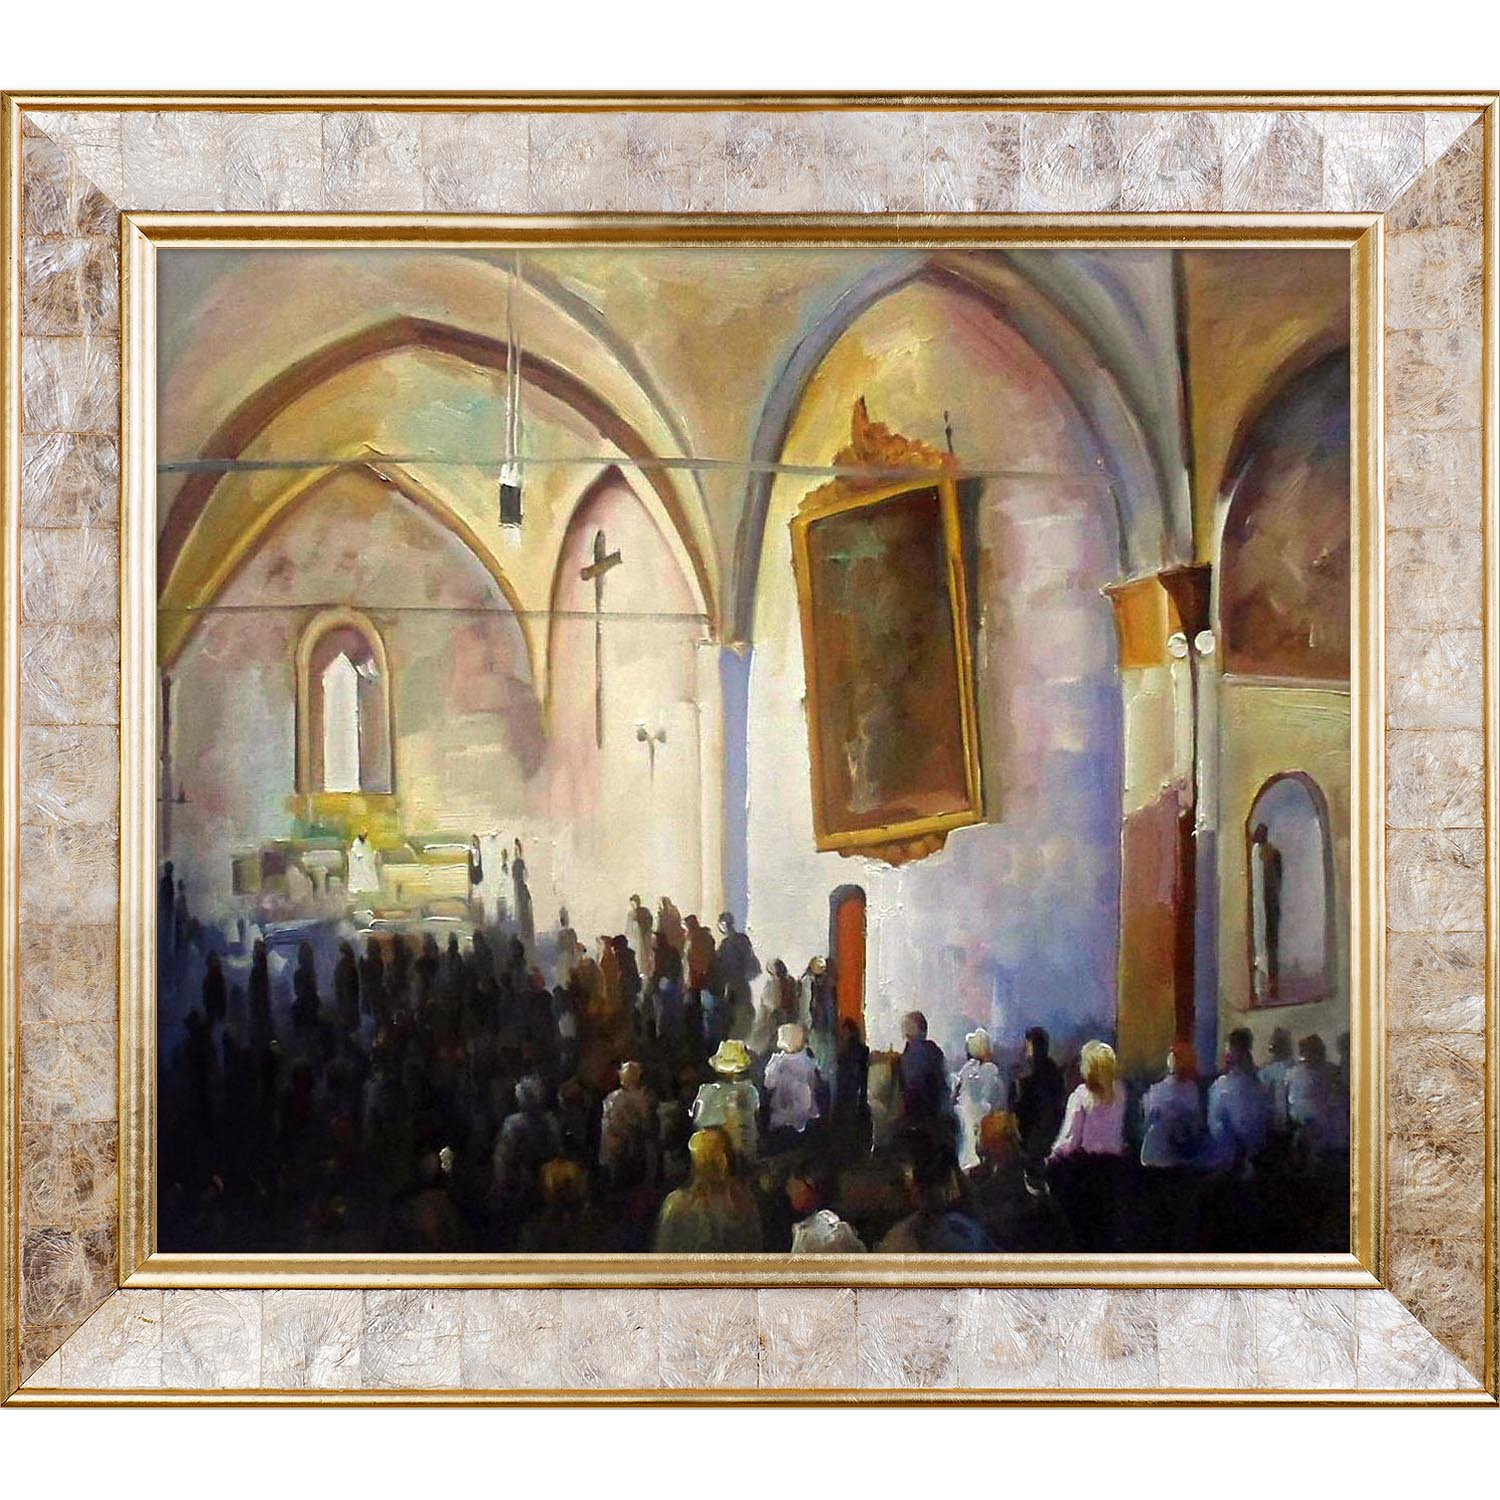 overstockArt The Wedding by Lambiase with Gold Pearl Inlay Frame by overstockArt